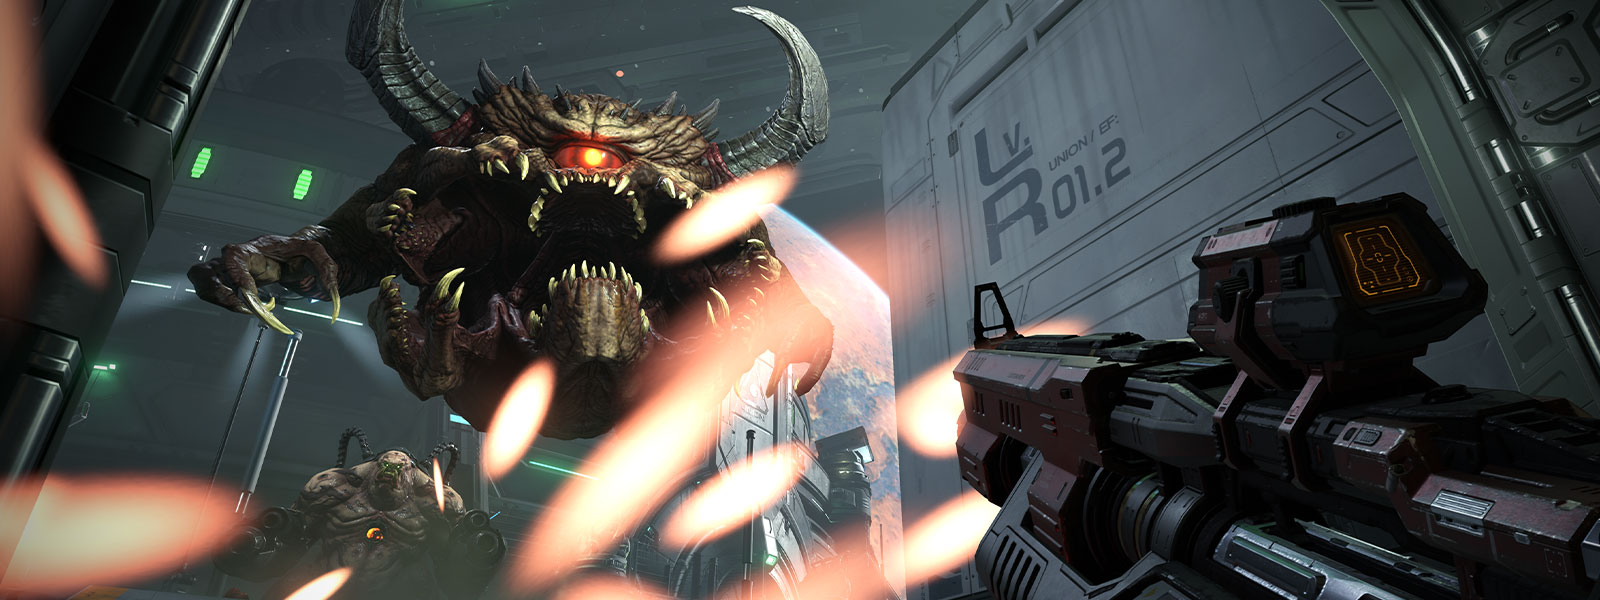 Character fighting a monster with horns, many teeth and one eye with another monster with large guns in the background